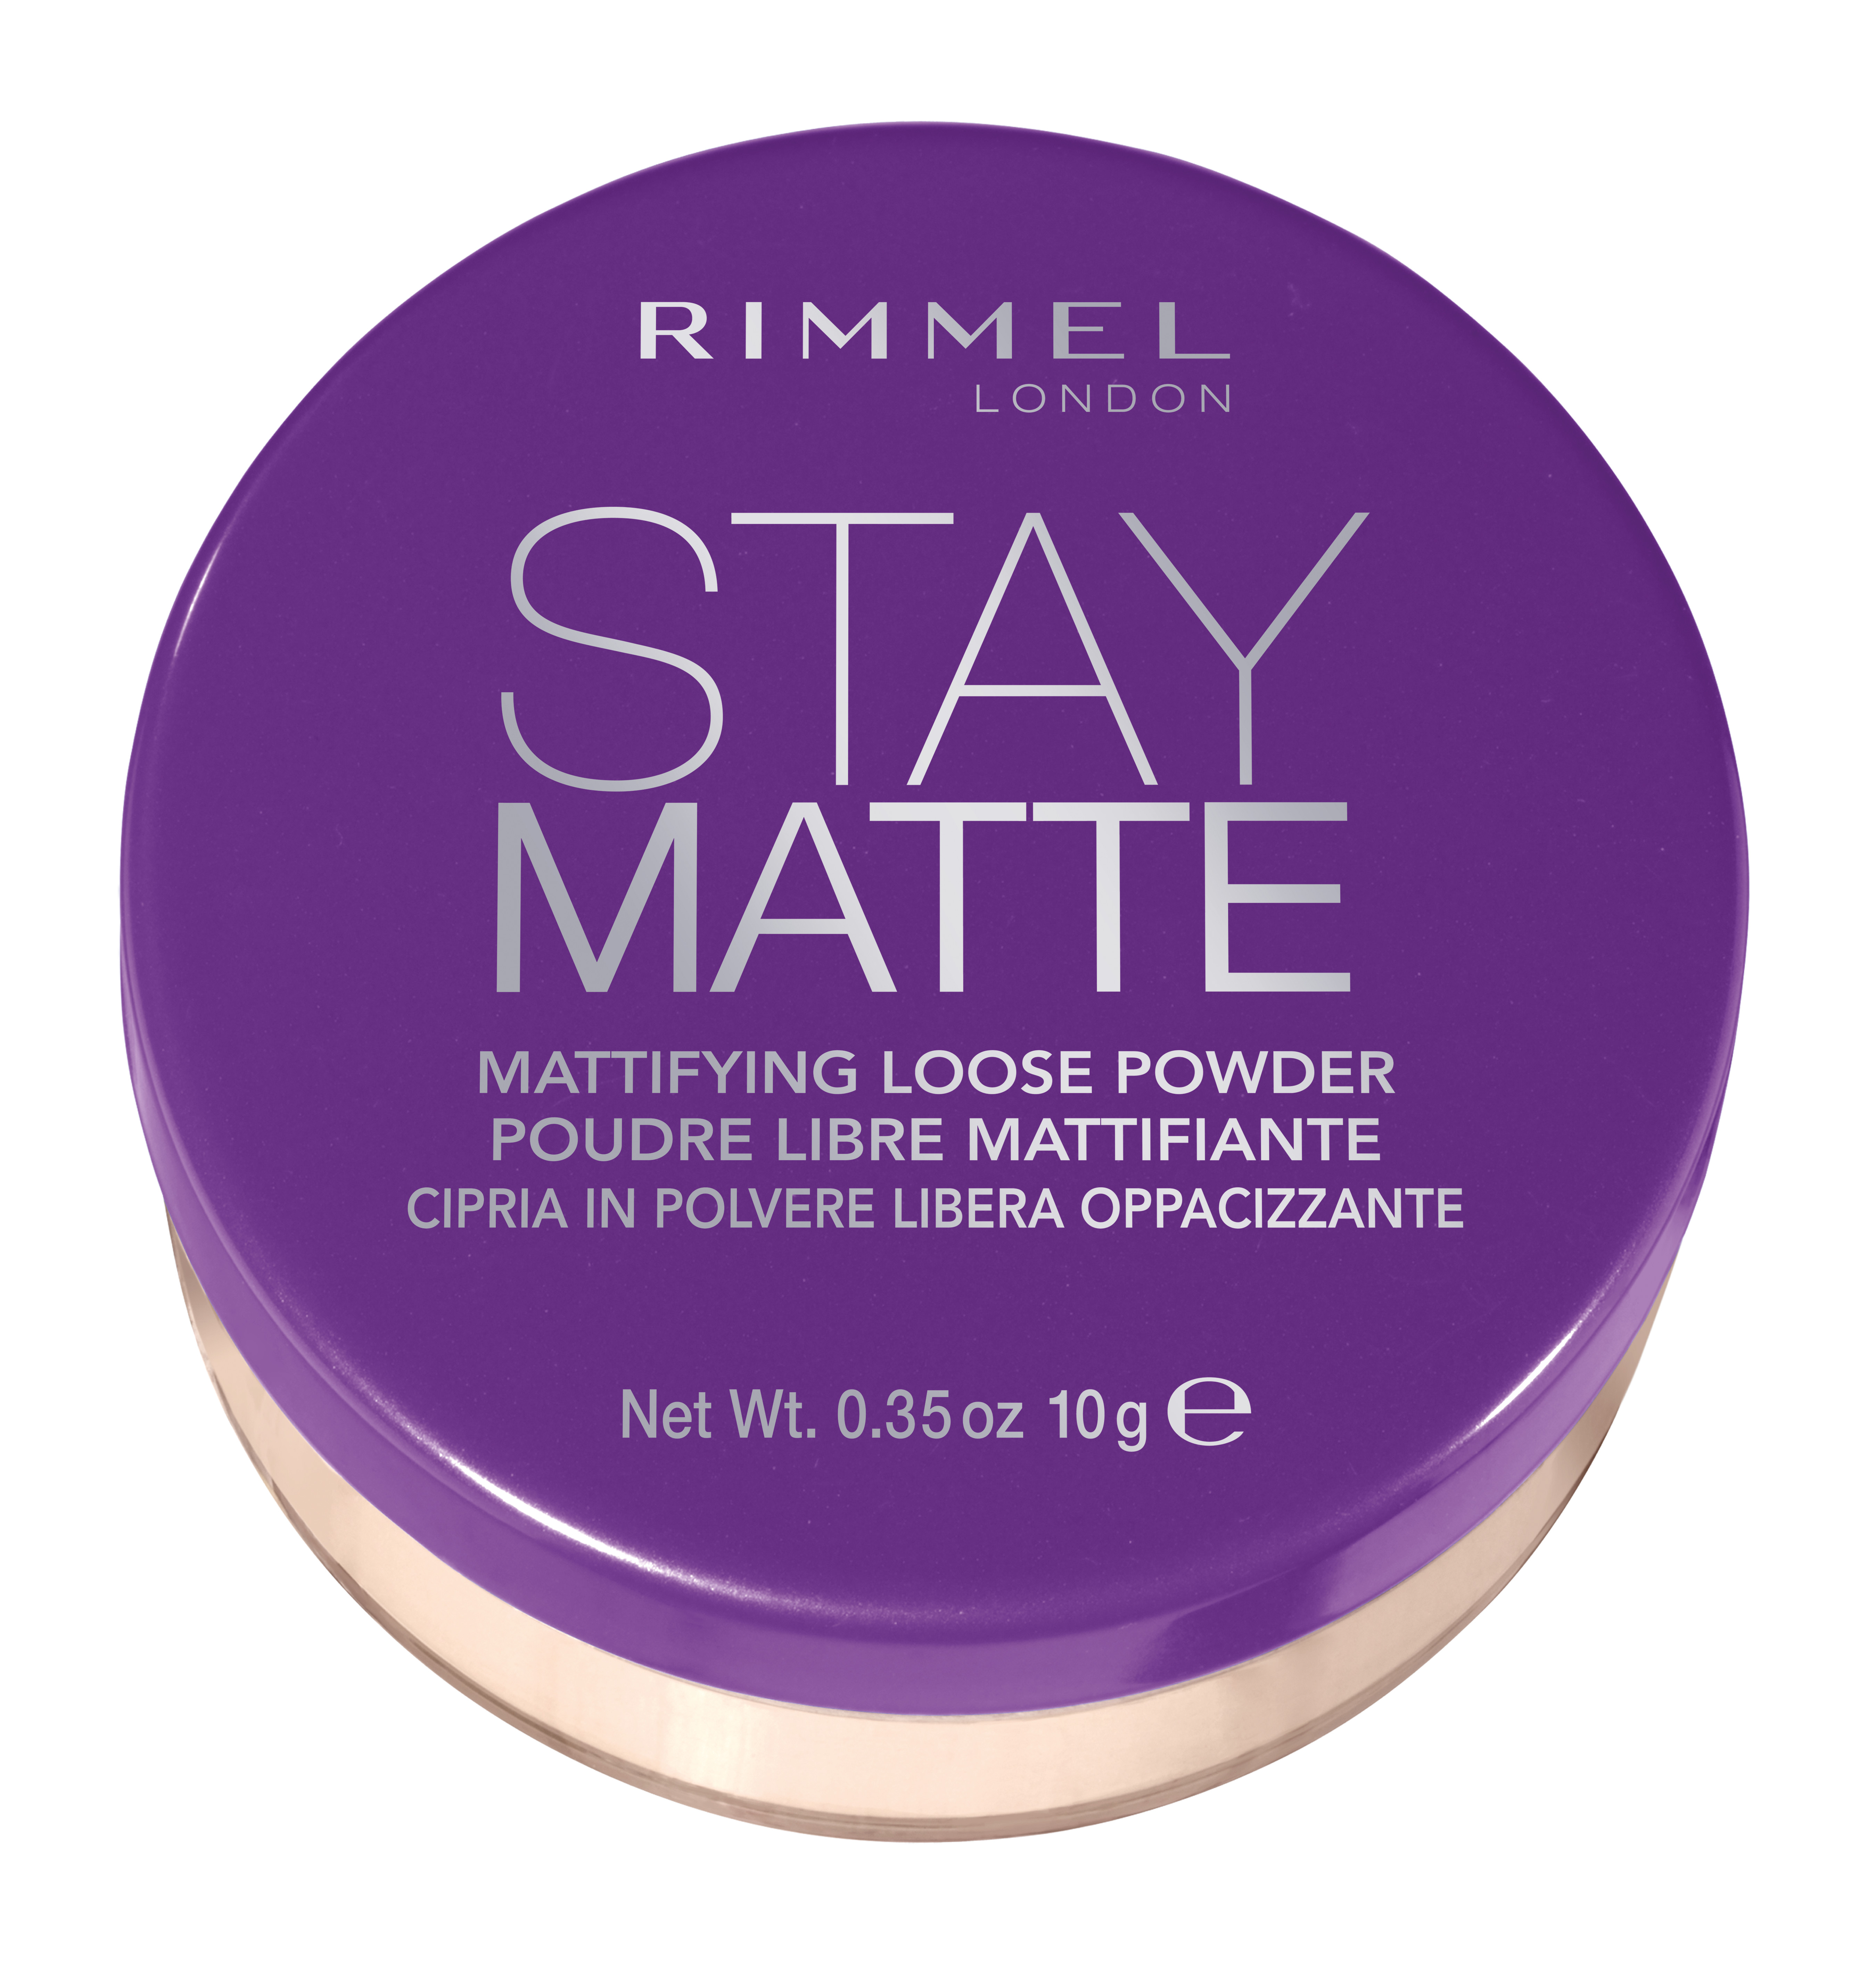 Rimmel Stay Matte Loose Powder in 001 Transparent